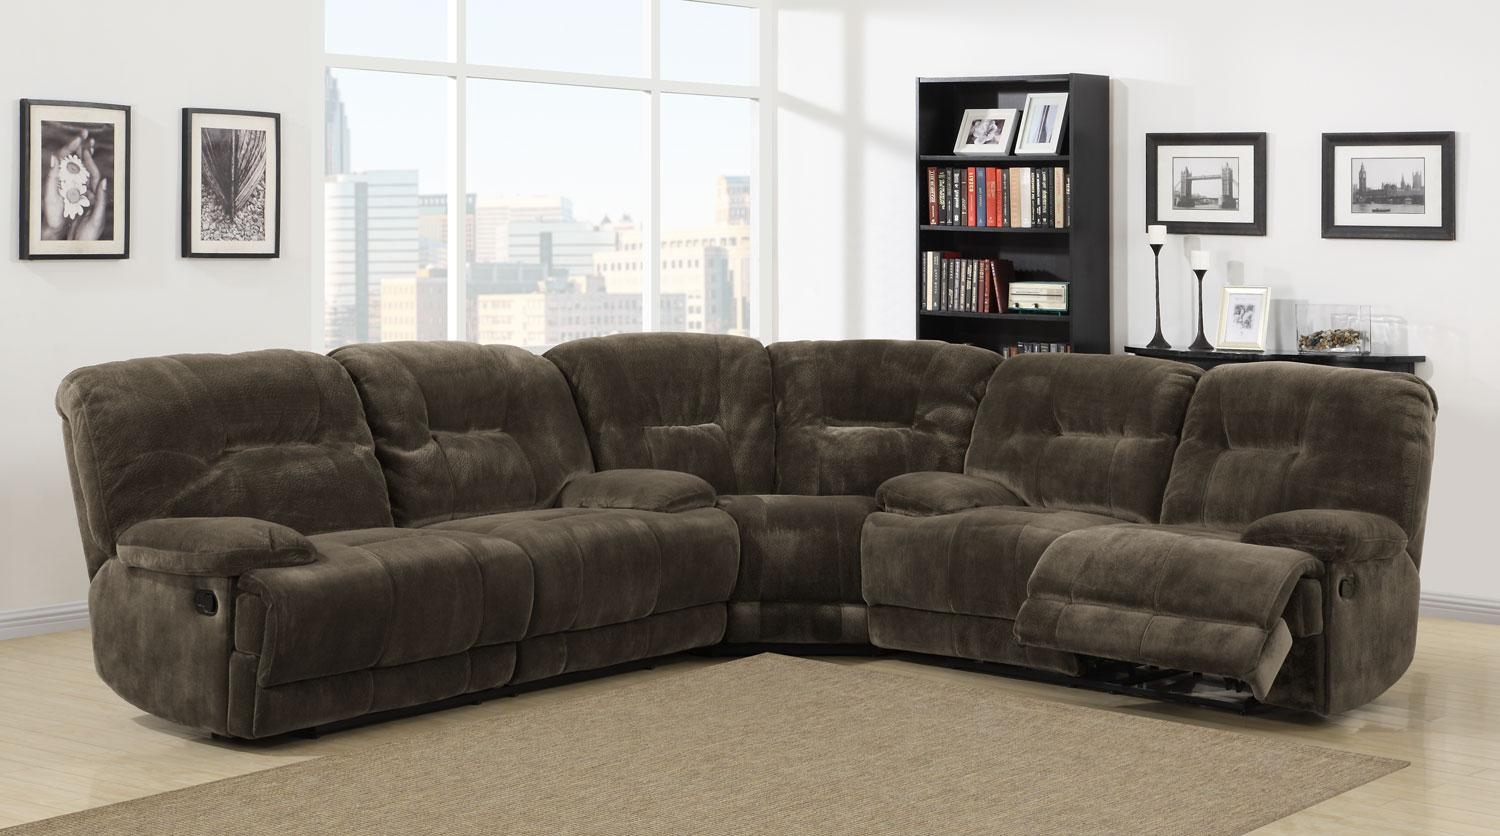 Sofas Center : Curiousonal Sofas Electric Recliners Shining Couch Throughout Sectional Sofas With Electric Recliners (Image 21 of 22)